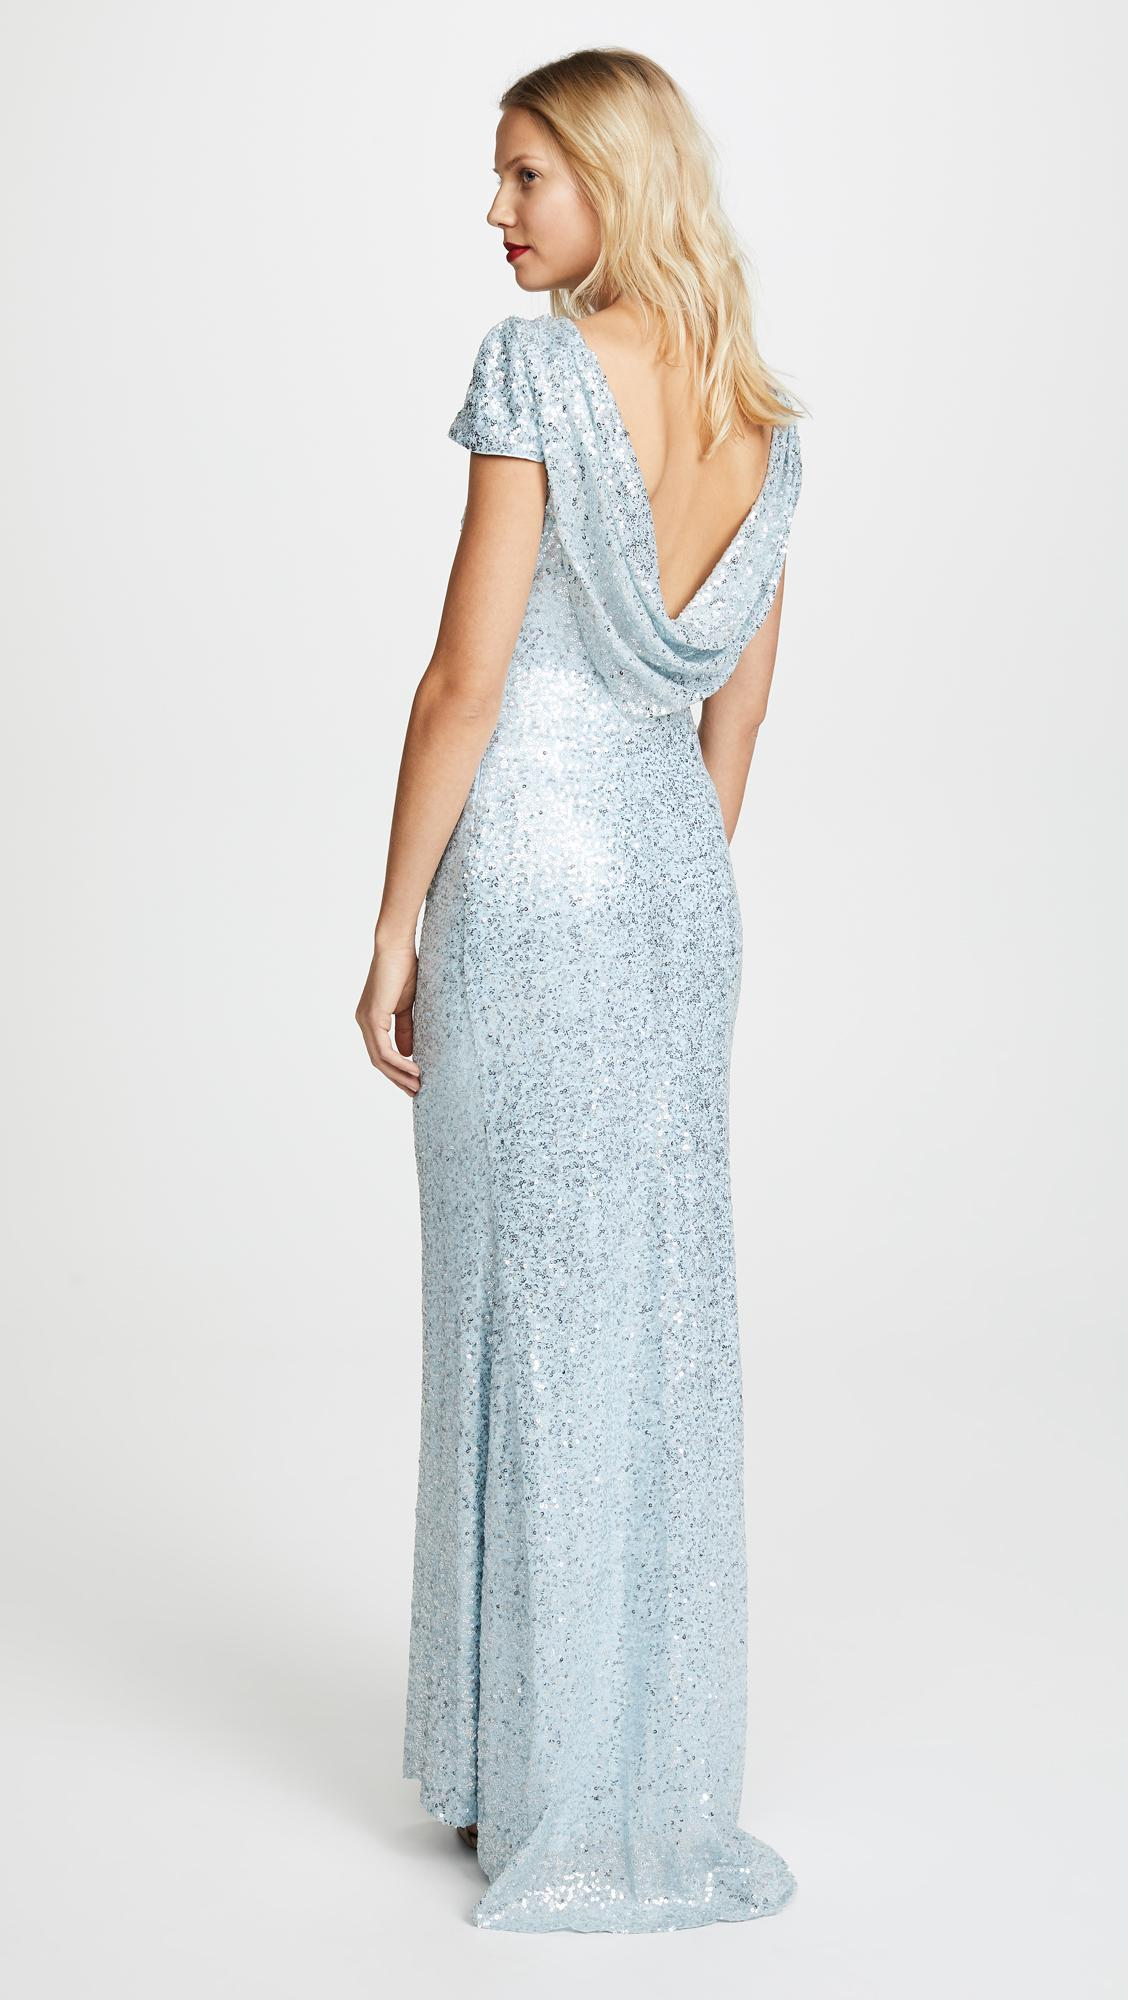 Lyst badgley mischka draped back gown in blue for Badgley mischka store nyc